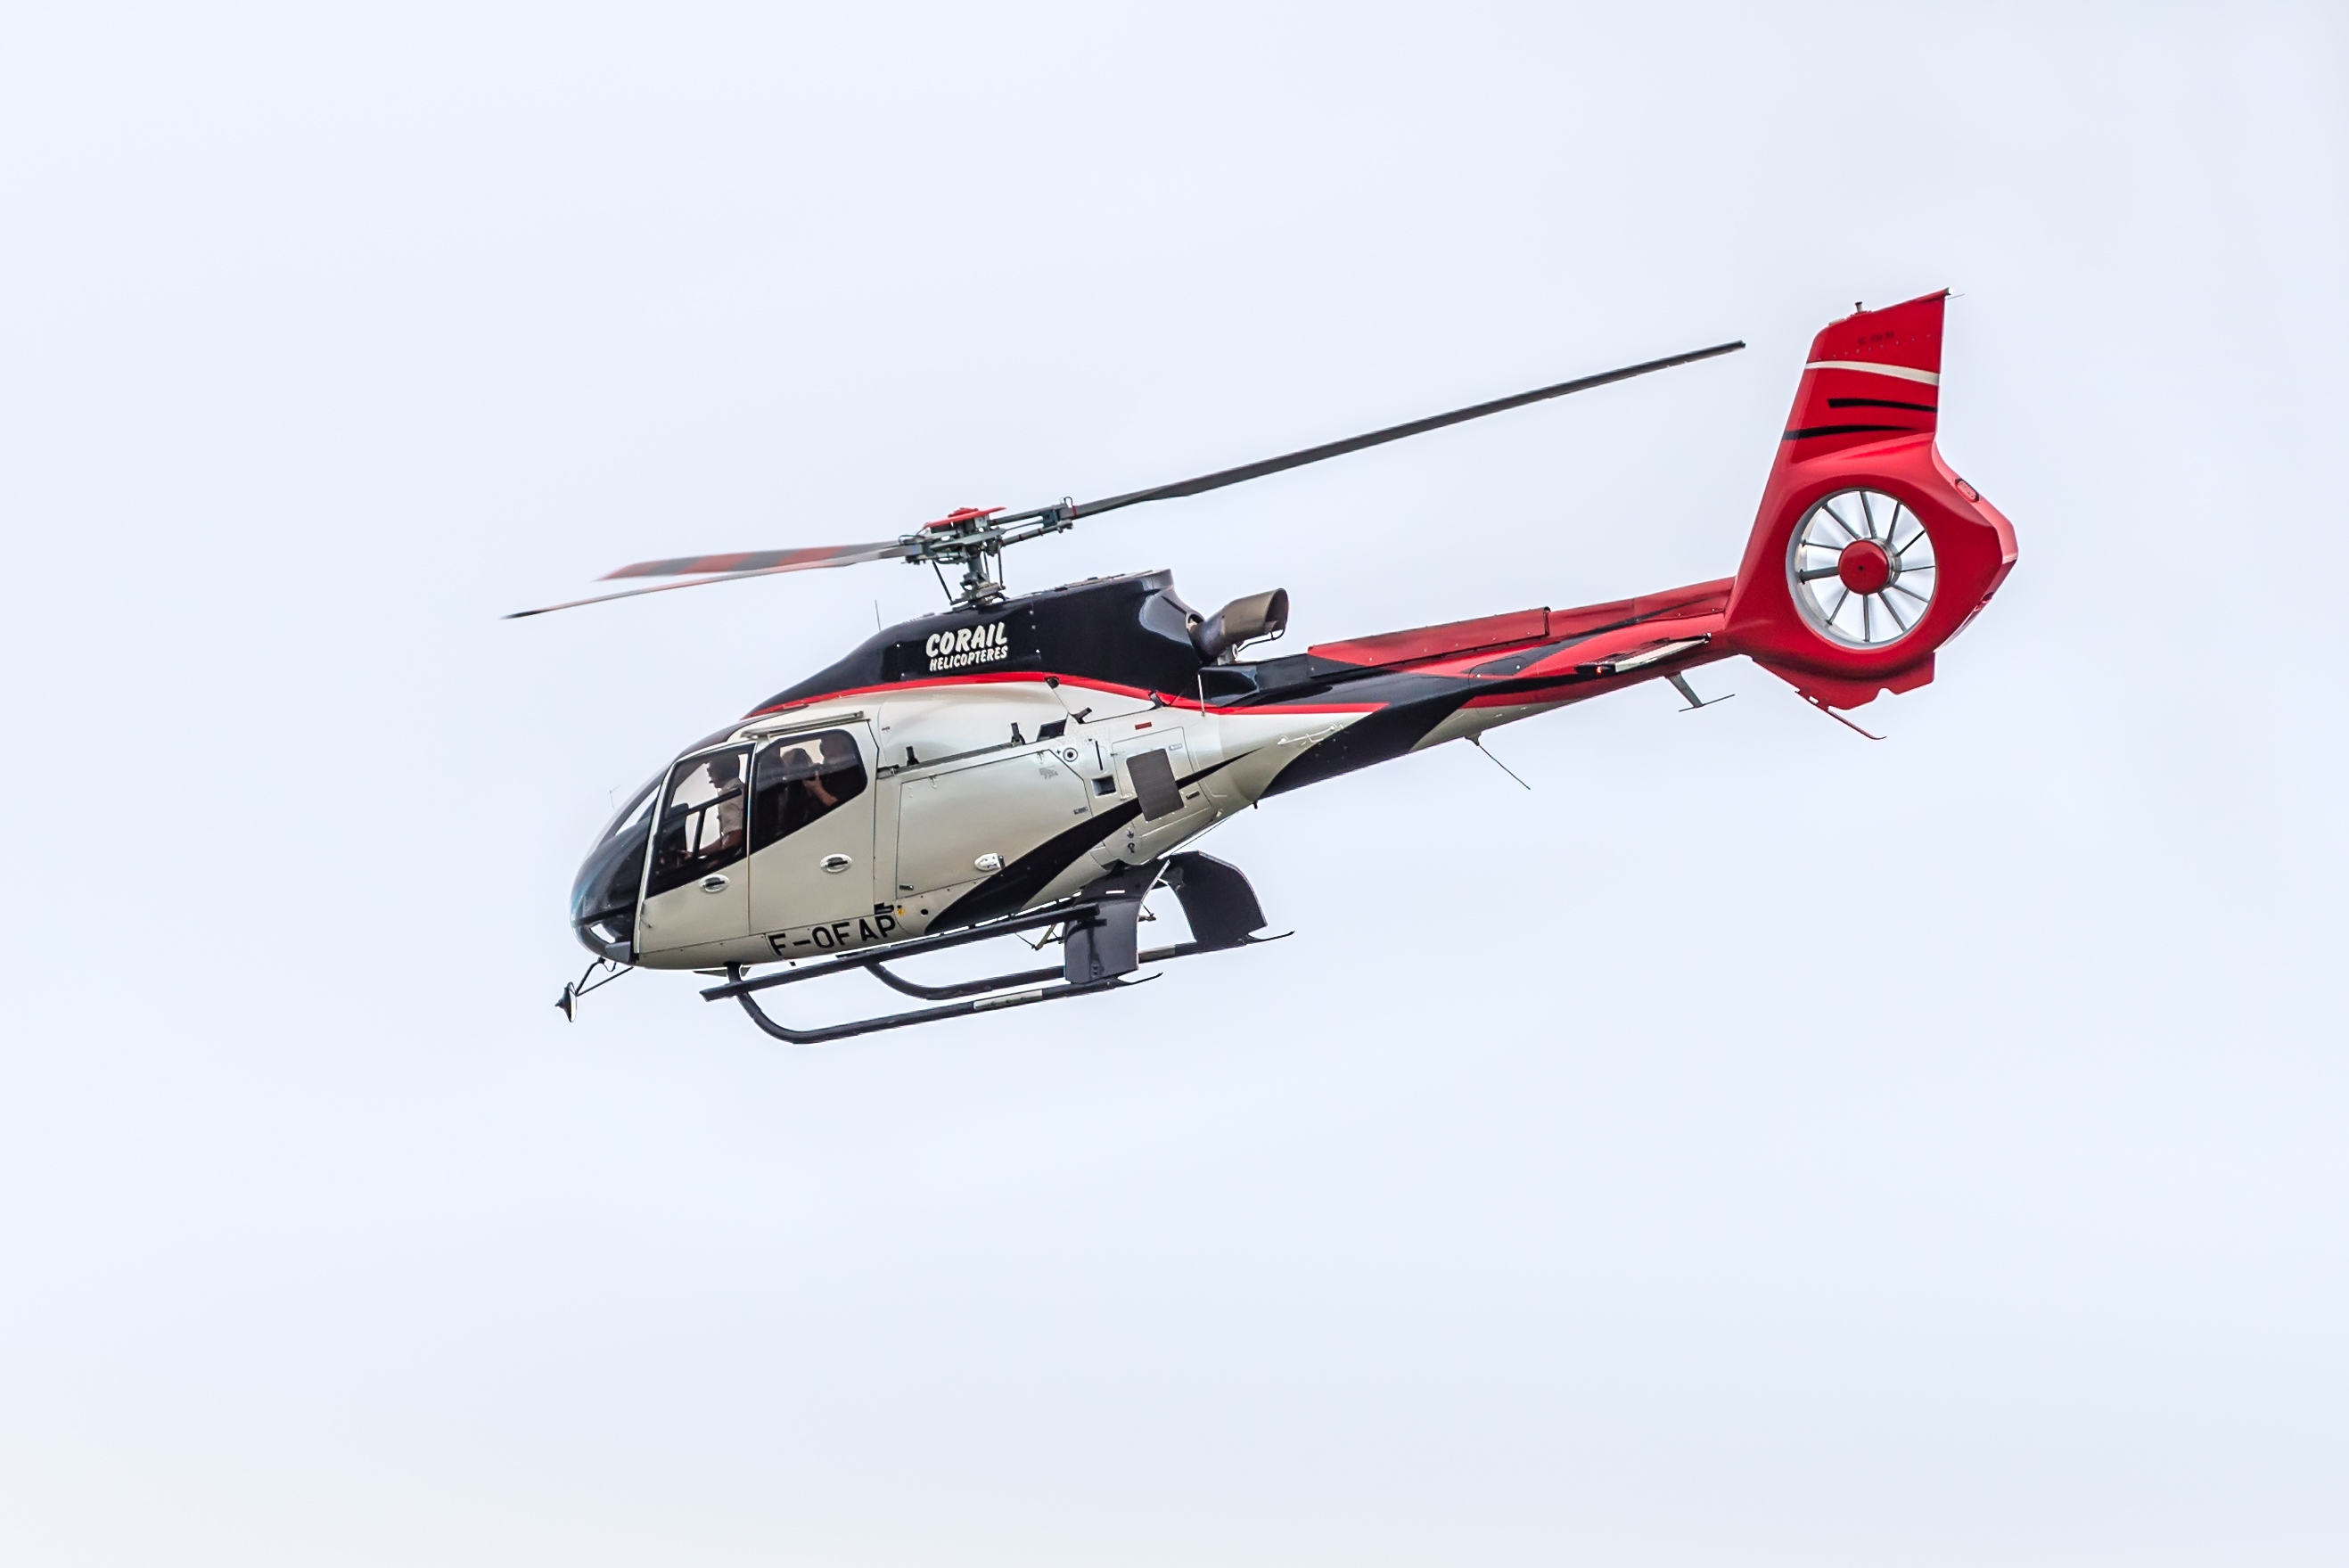 An AS350 Squirrel aircraft, similar to the one that was forced to land in a loch (iStock)